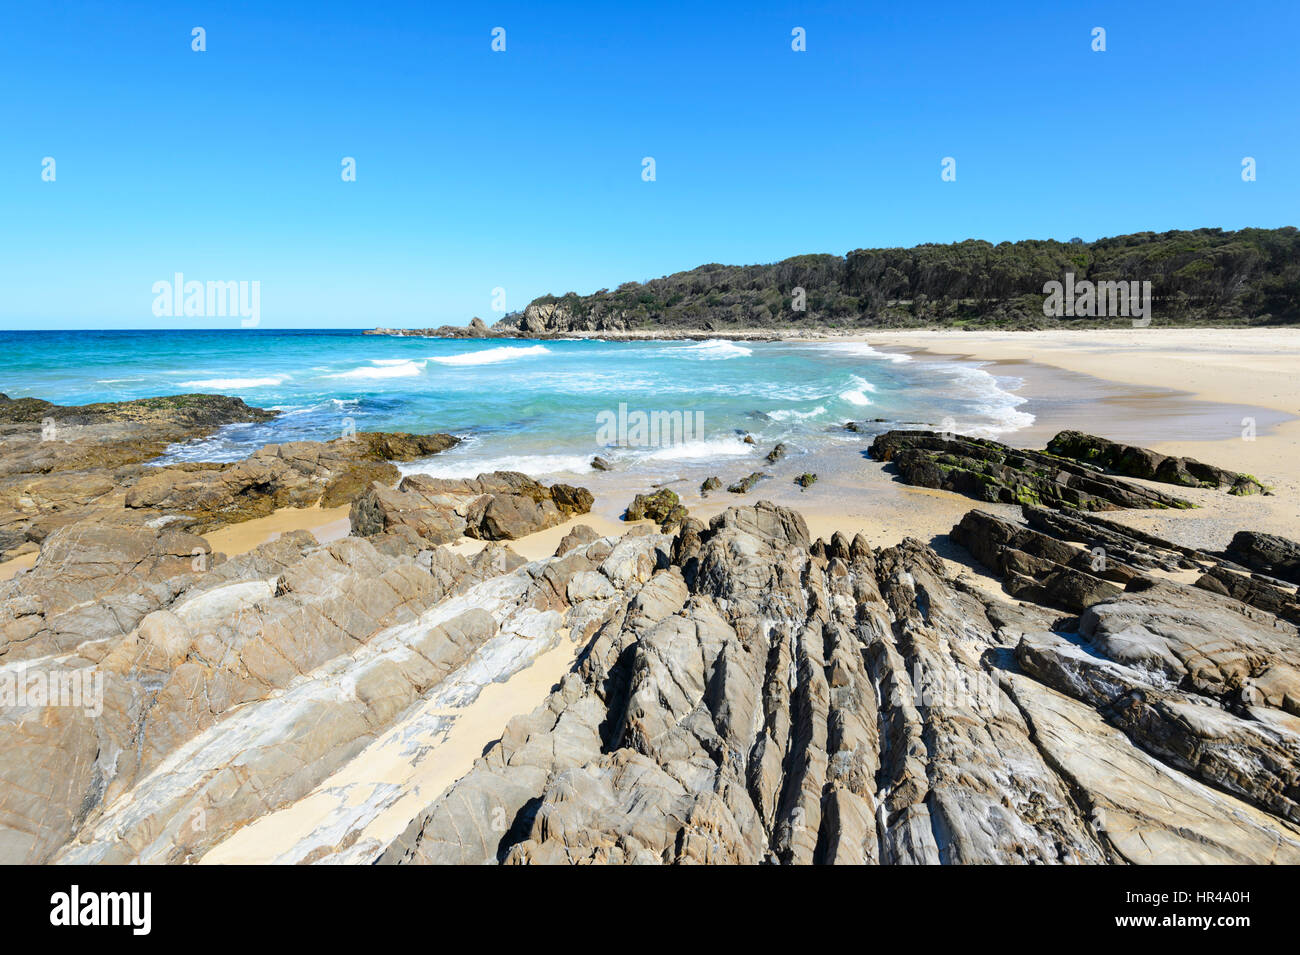 Deserted sandy beach with amazing rock formations at Potato Point, New South Wales, Australia - Stock Image